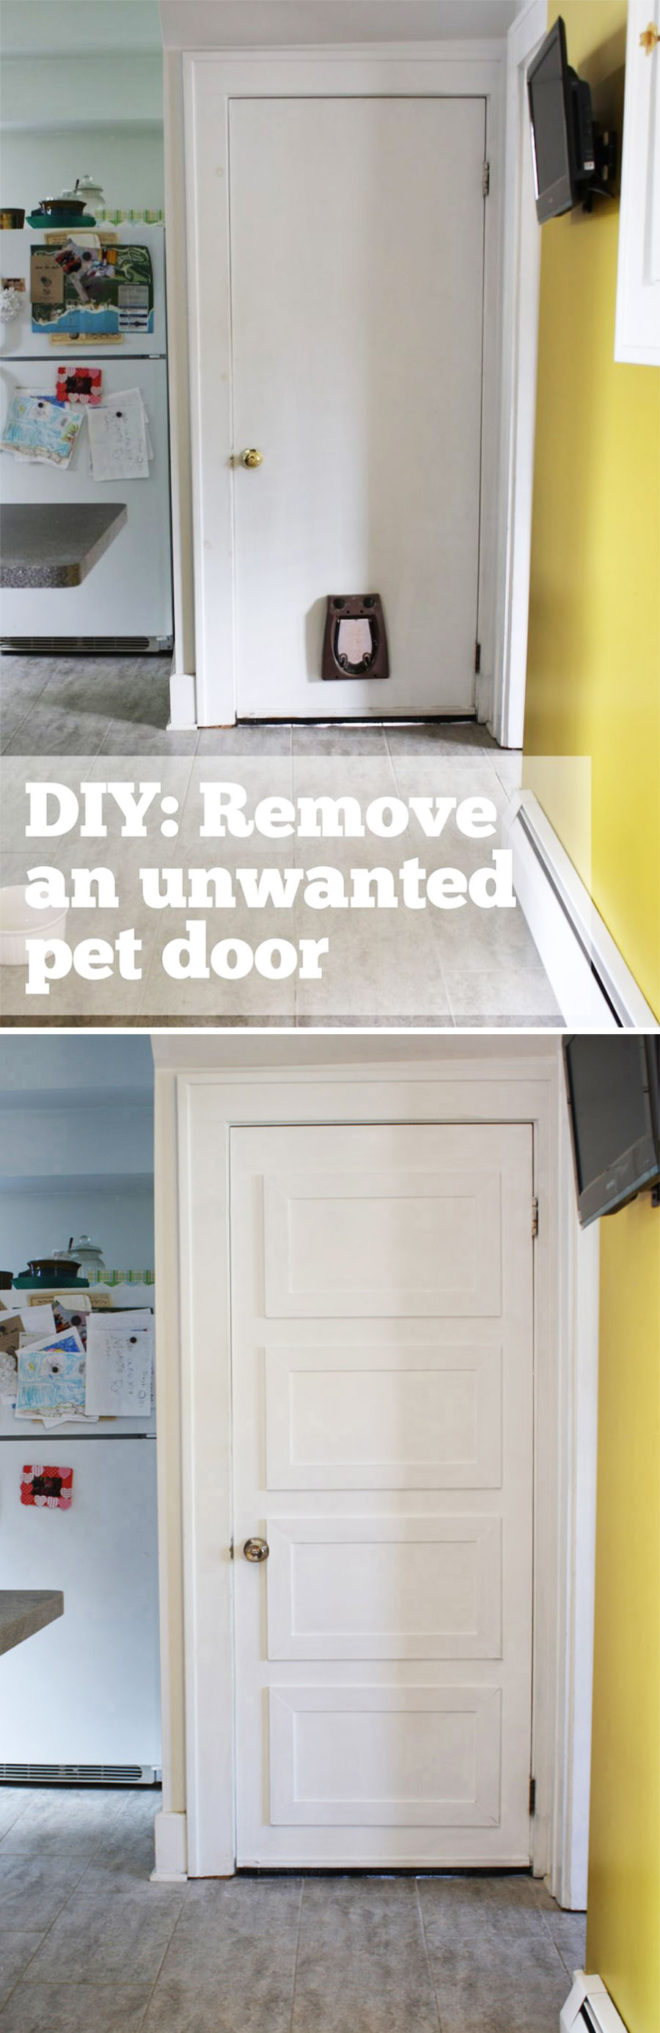 How to remove a pet door and cover the hole.